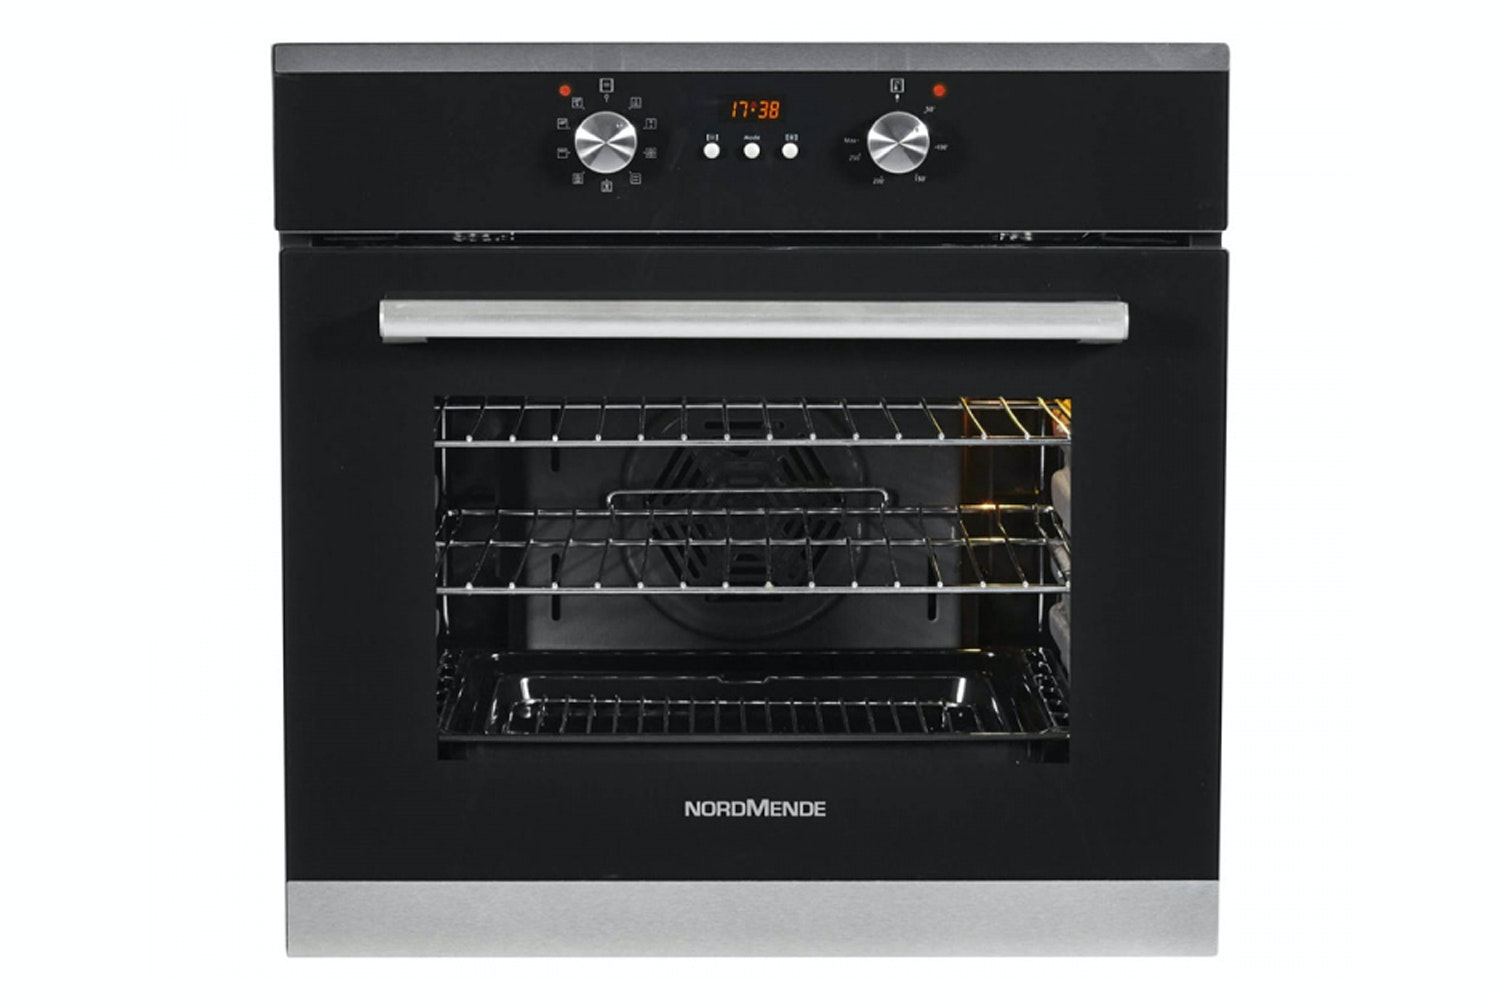 Nordmende Built in Single Oven | SO313IX